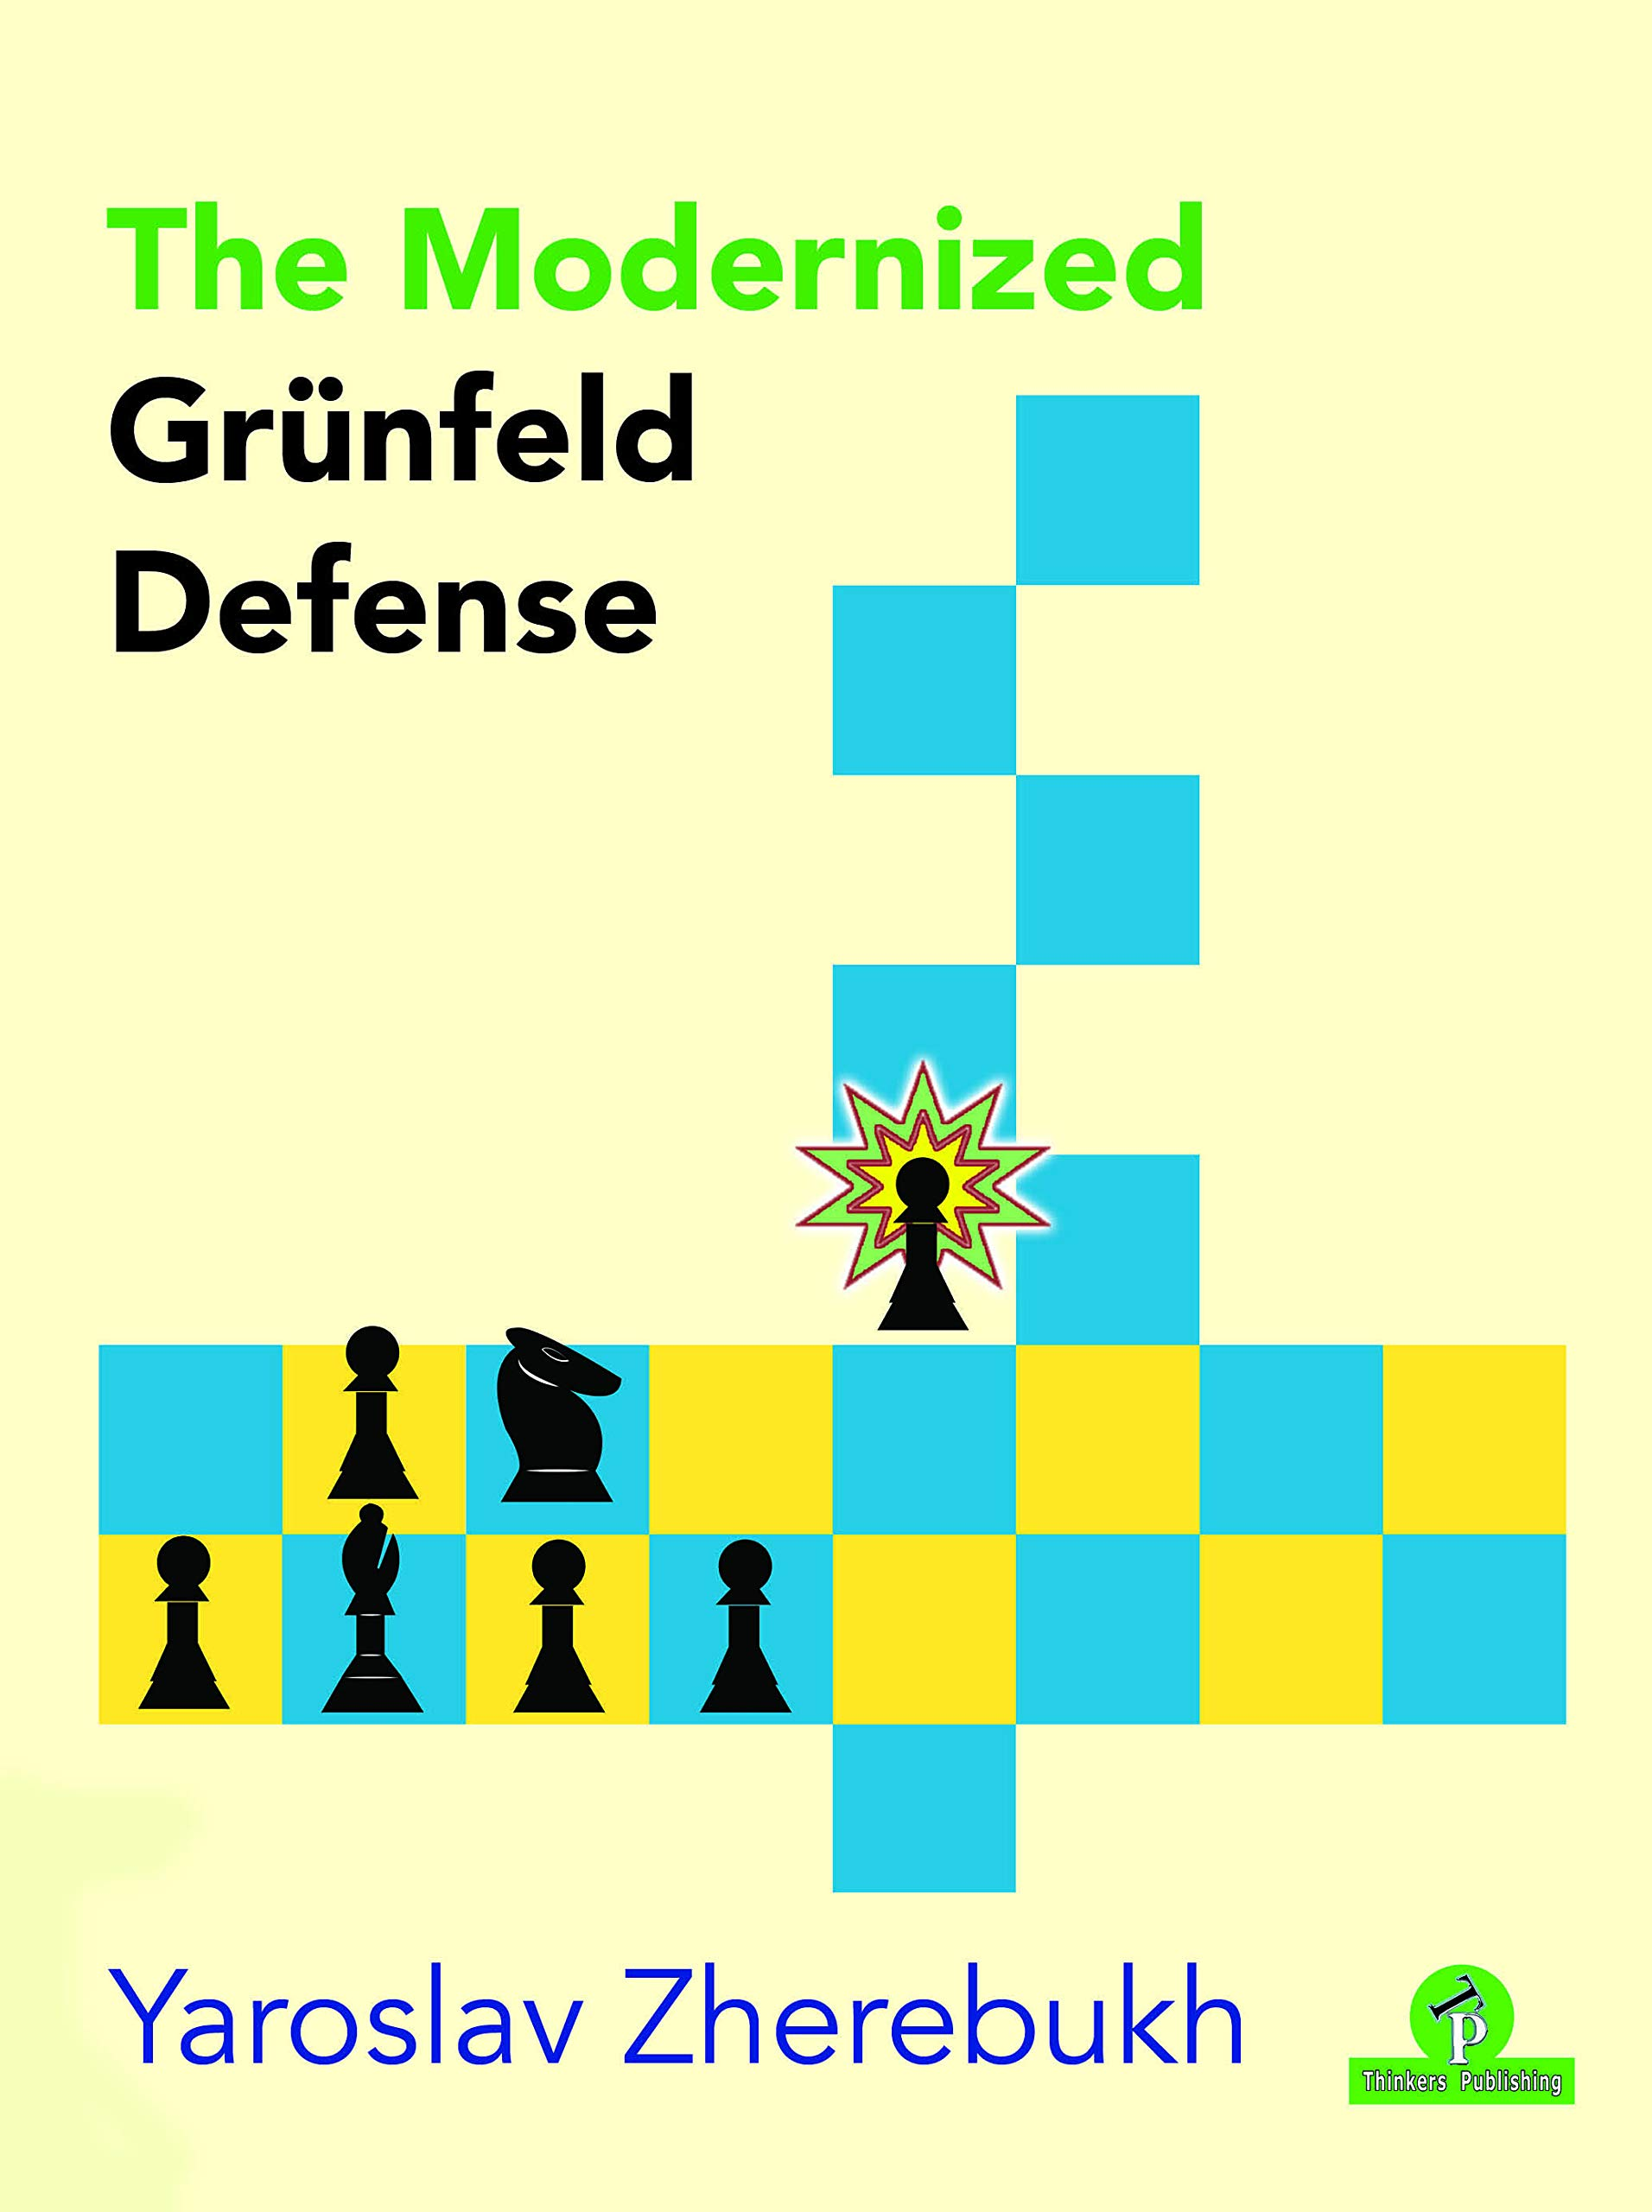 The Modernized Grünfeld Defense